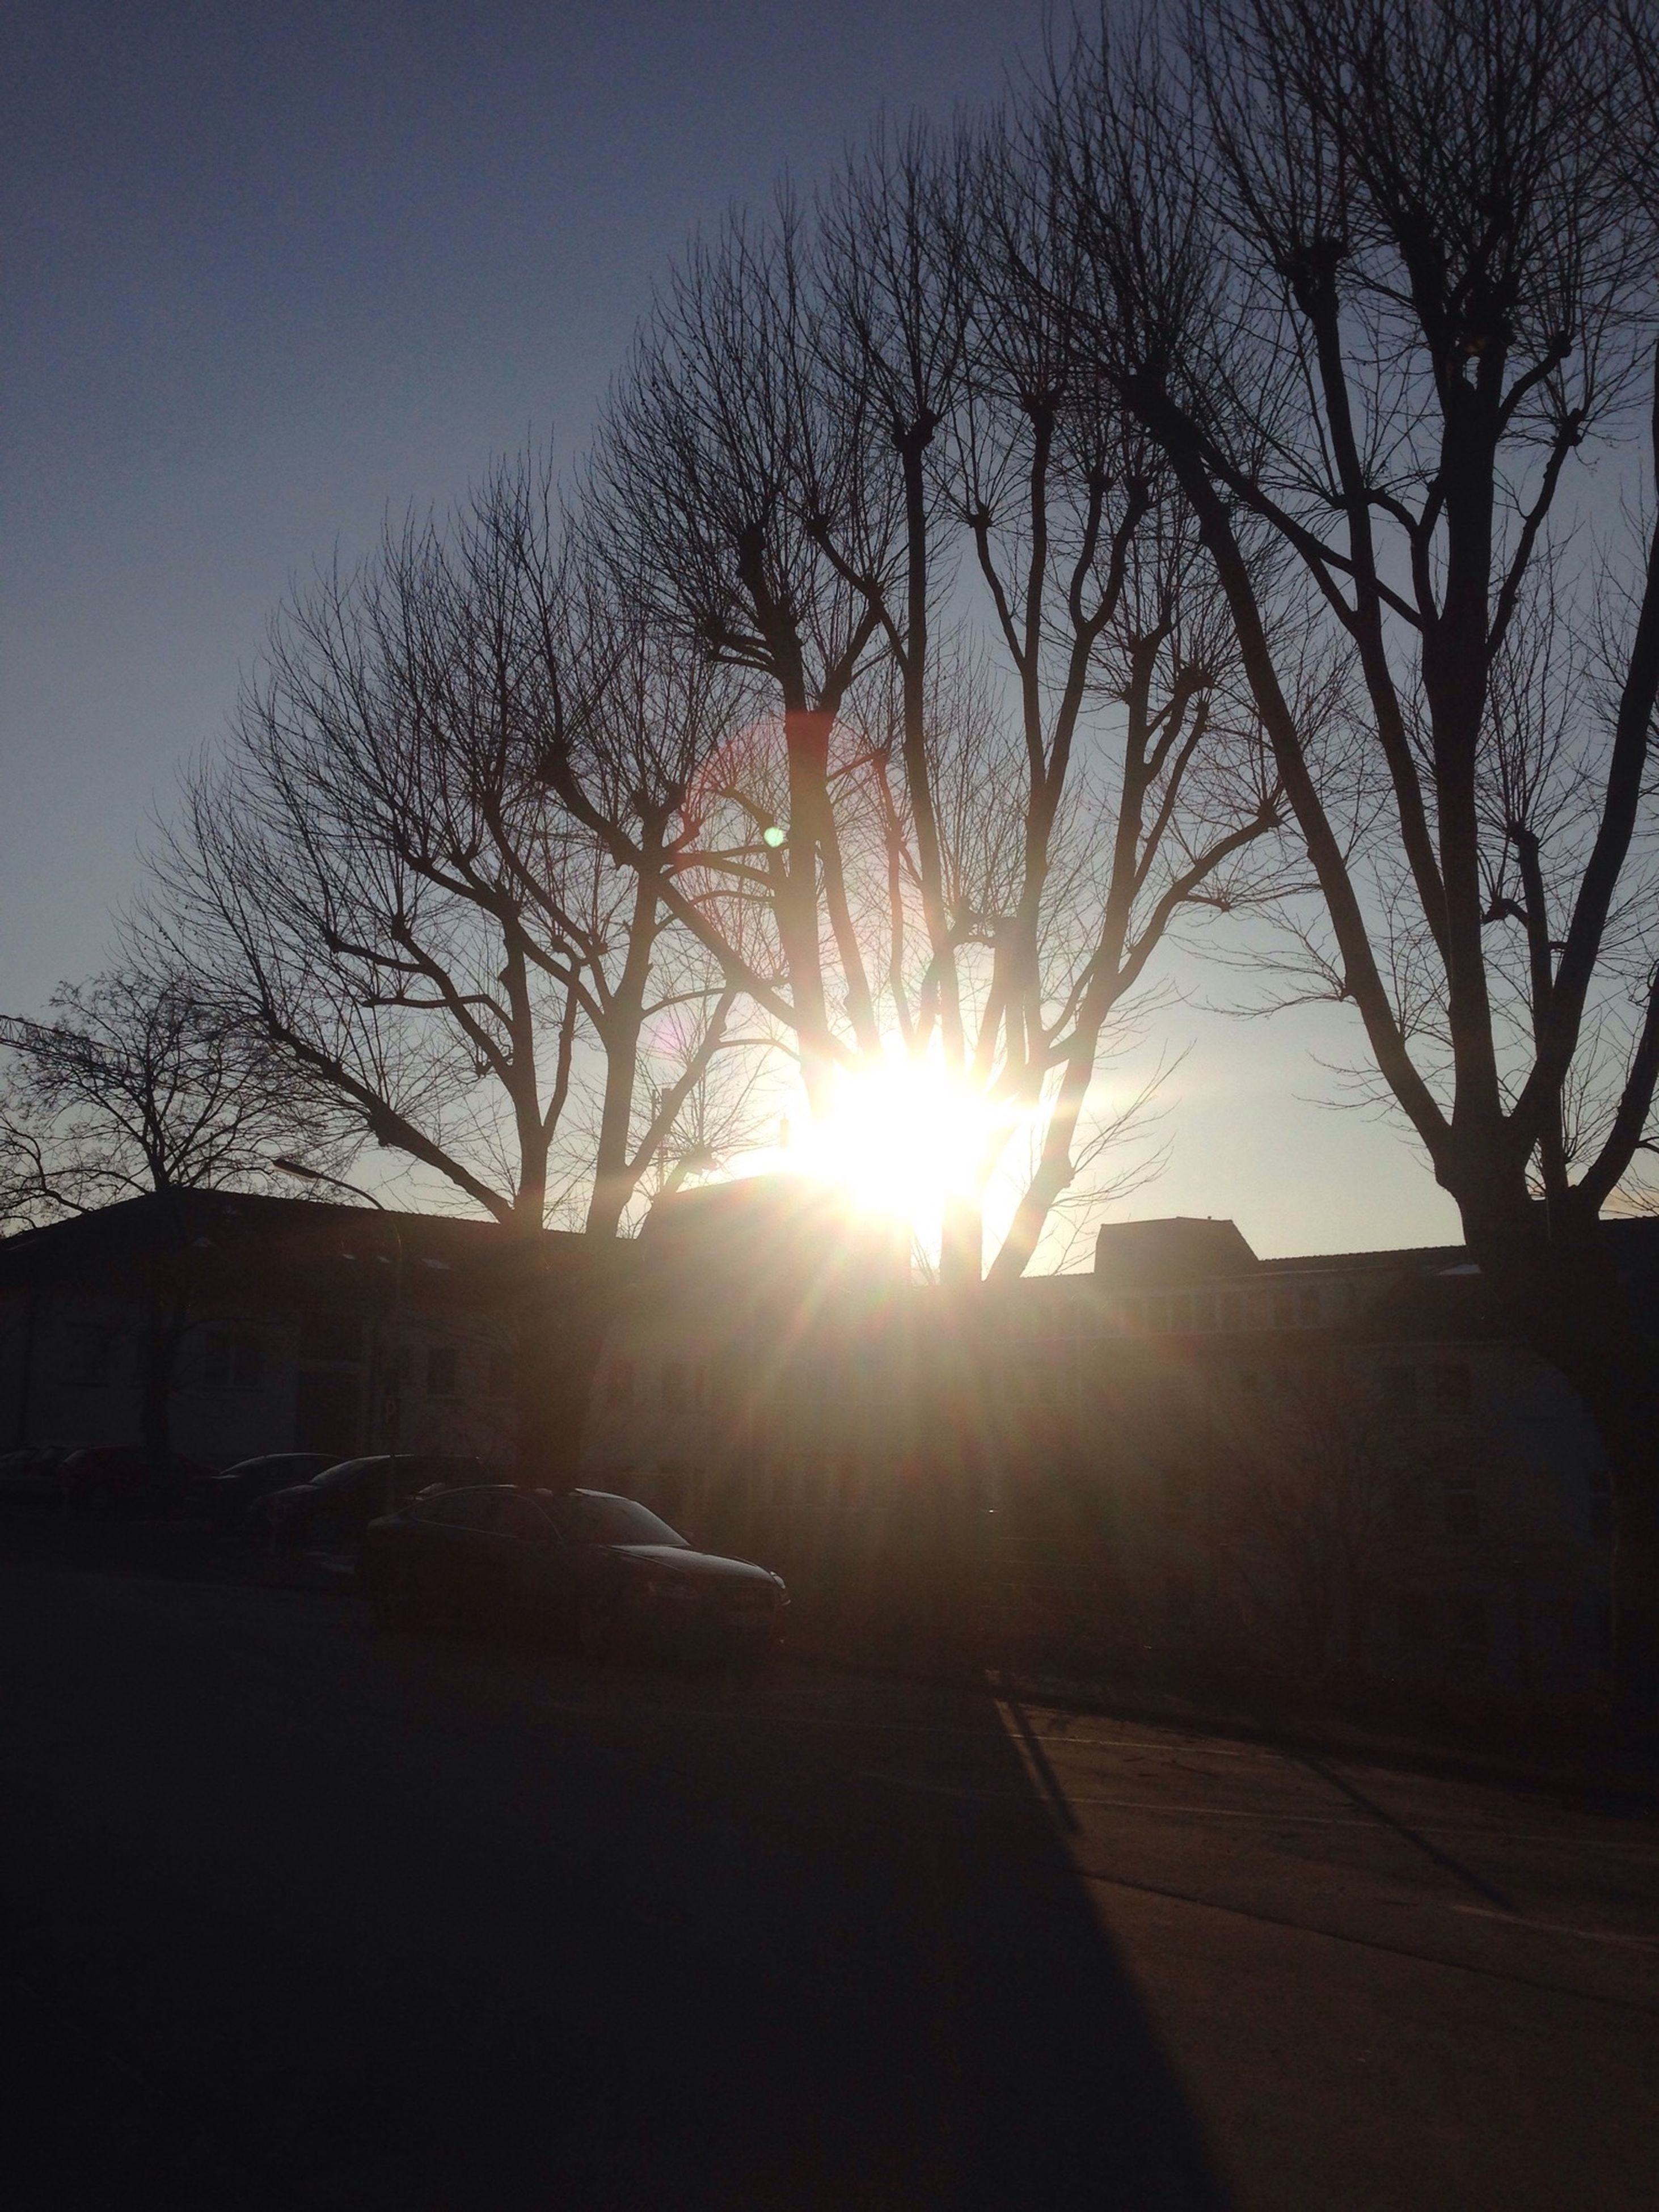 sun, bare tree, built structure, sunlight, tree, building exterior, sunbeam, silhouette, architecture, lens flare, sunset, sky, branch, clear sky, nature, outdoors, low angle view, no people, tranquility, house